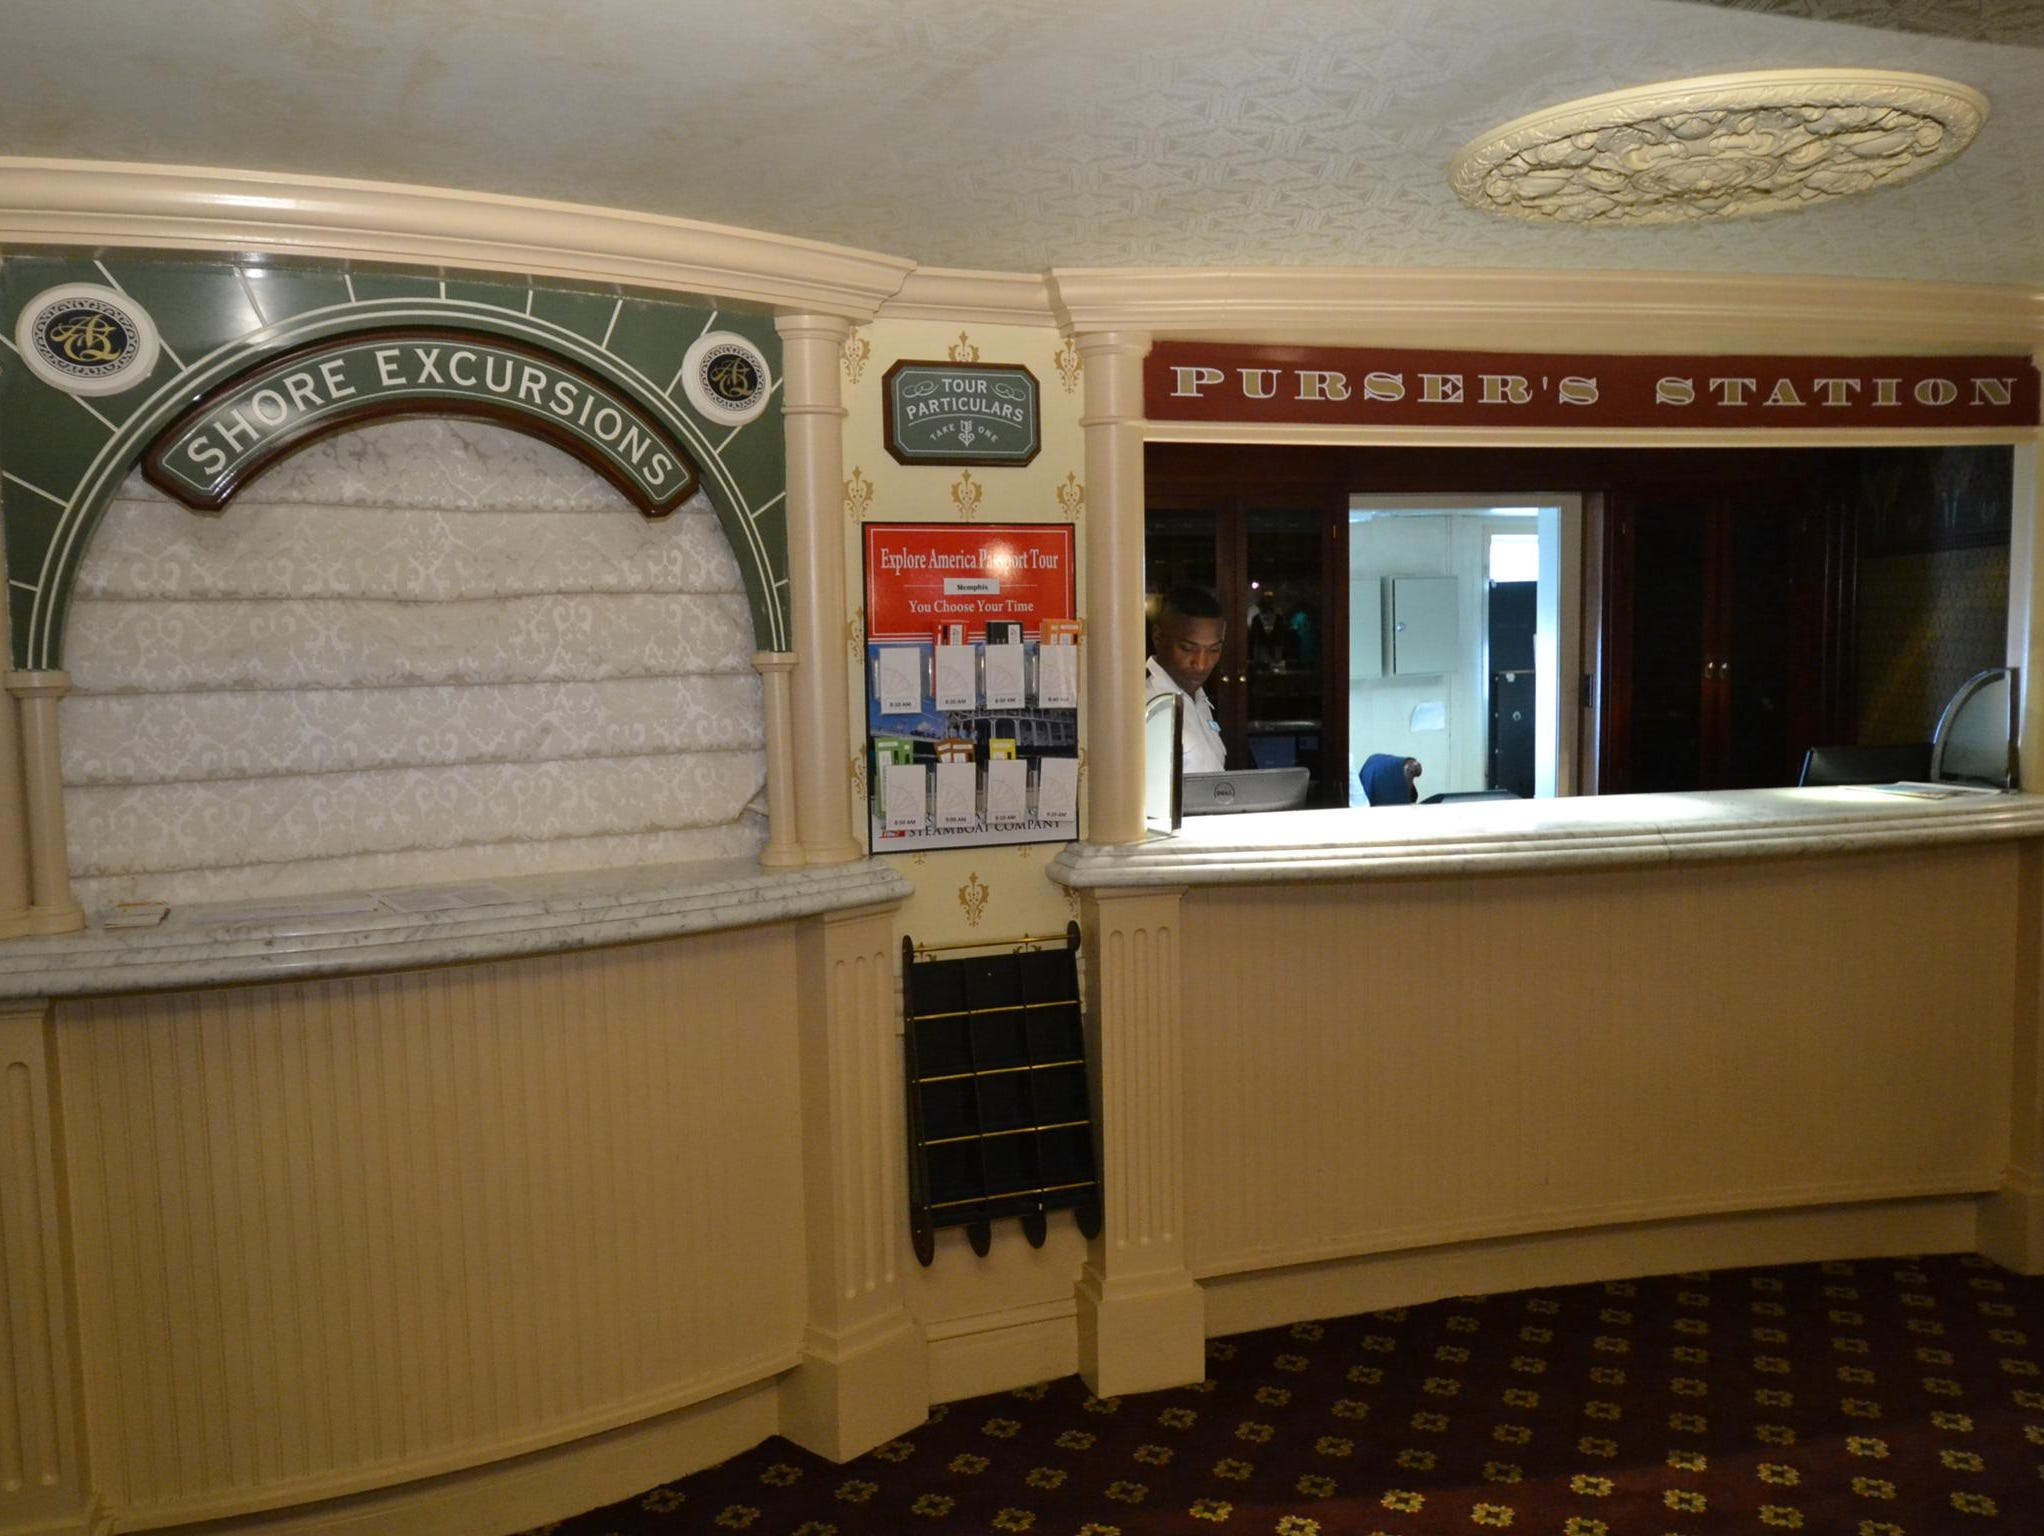 The Purser's Lobby is home to a Purser's Station and a shore excursion desk.